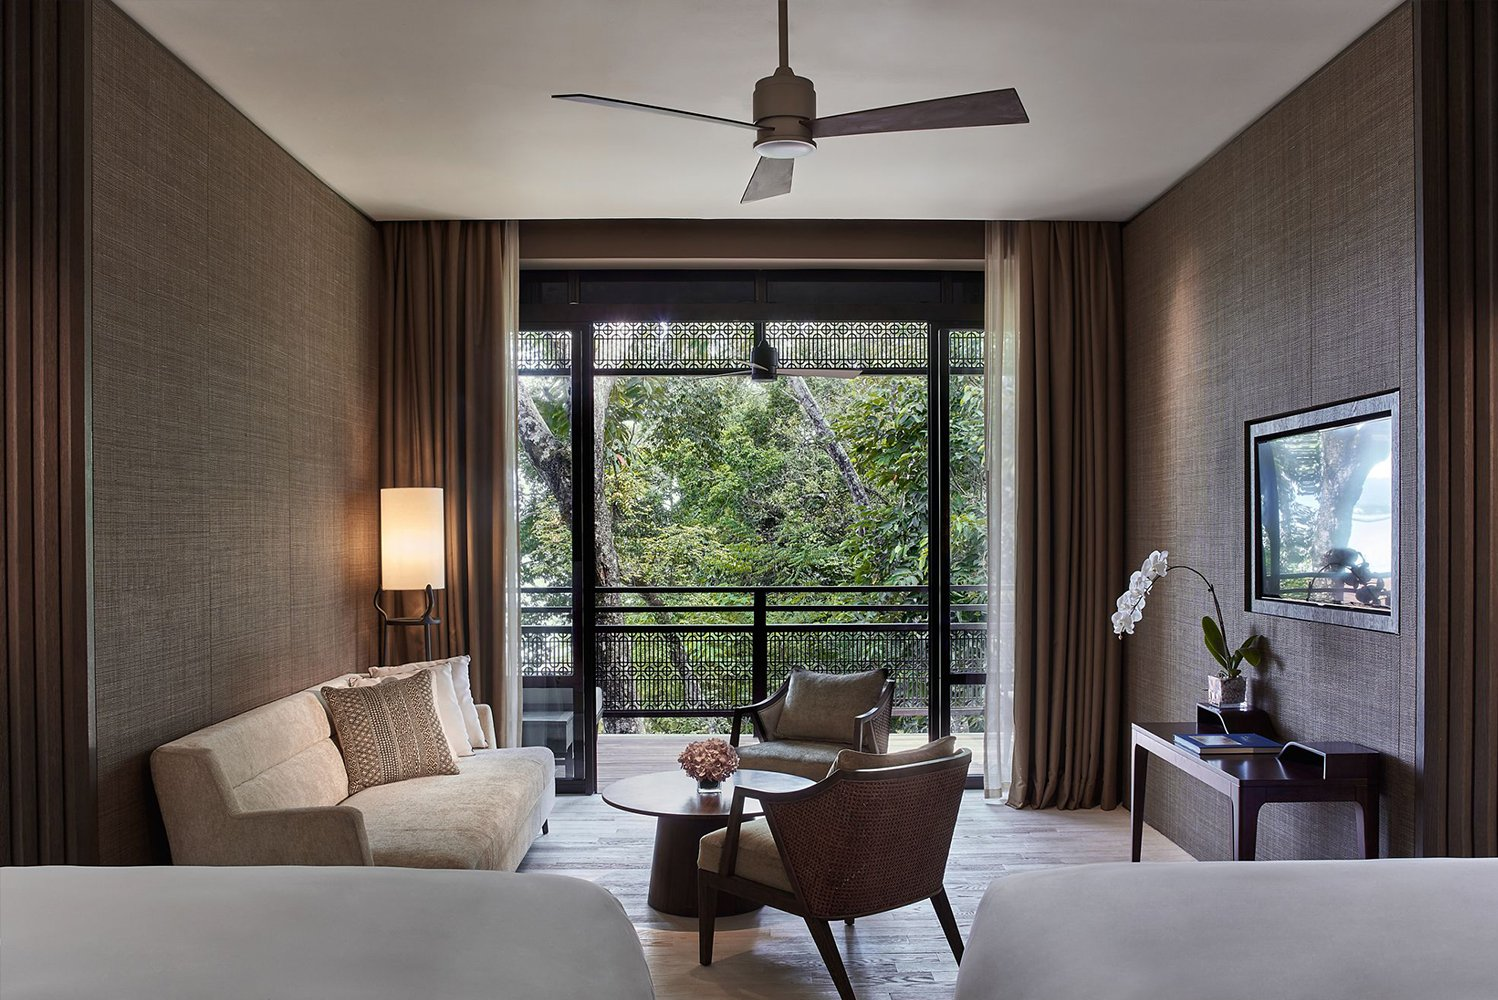 The Ritz-Carlton, Langkawi incorporates influences from local culture.